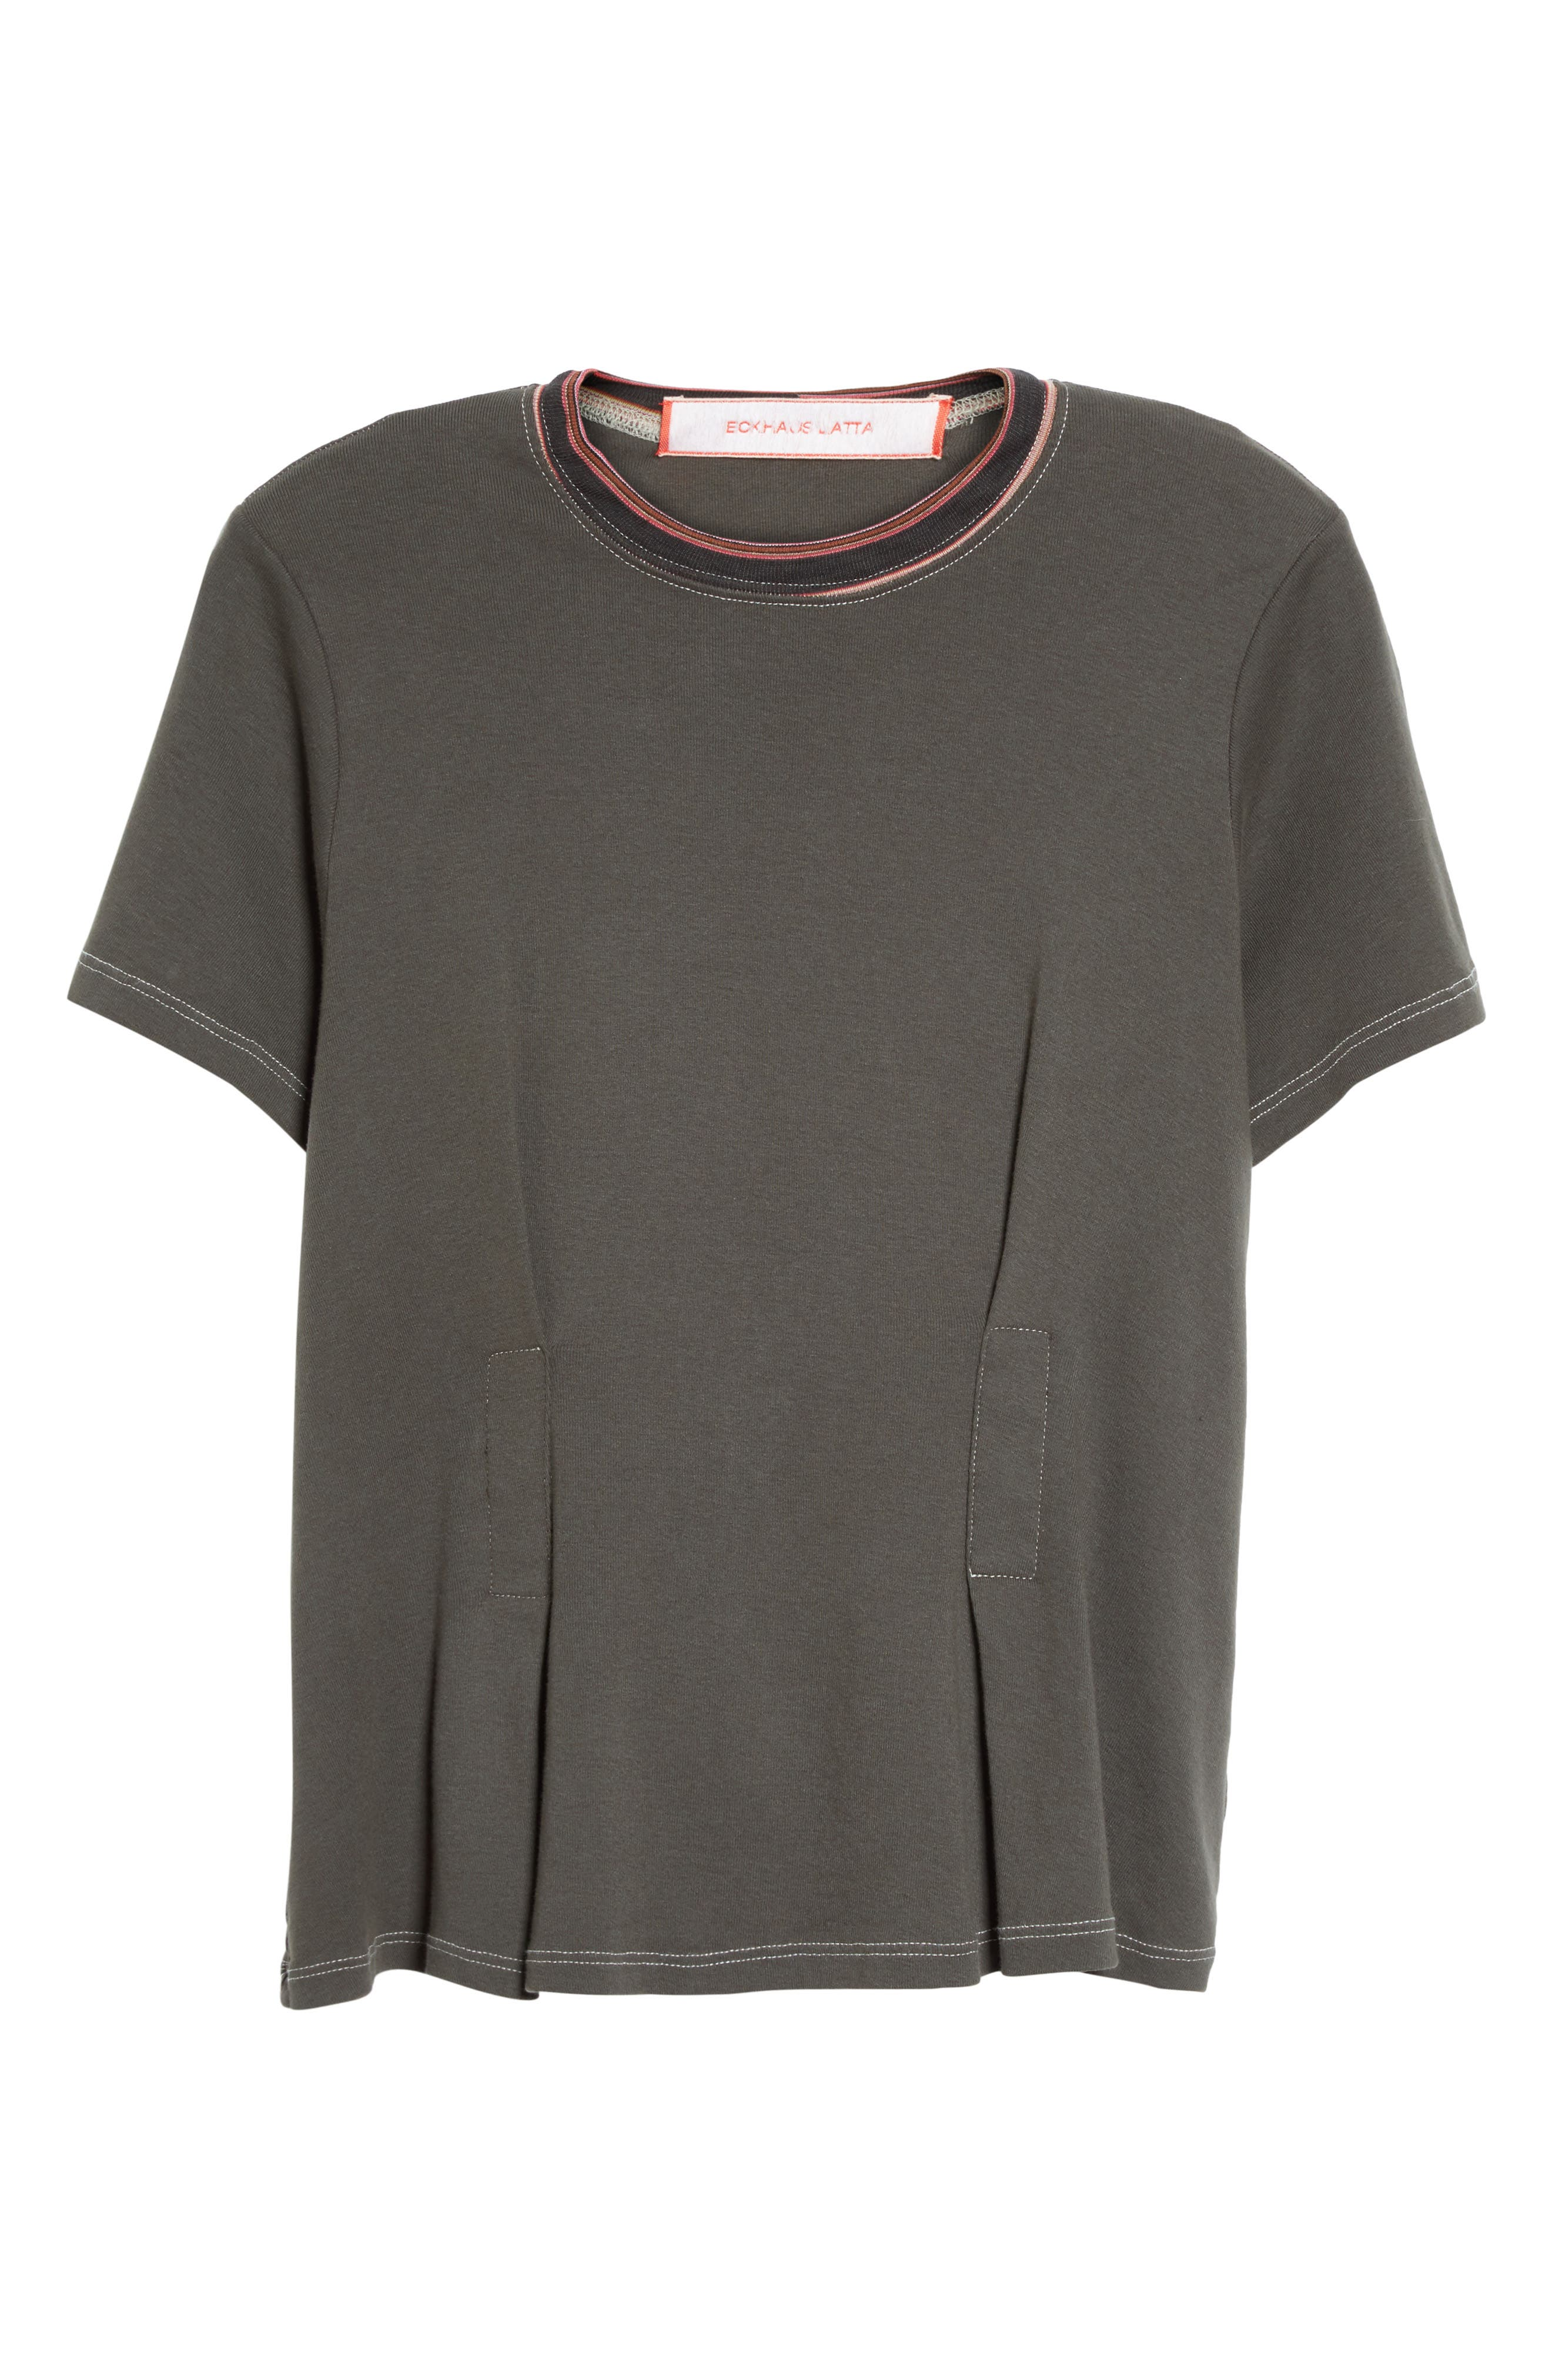 Top Stitch Tee,                             Alternate thumbnail 4, color,                             Off Black